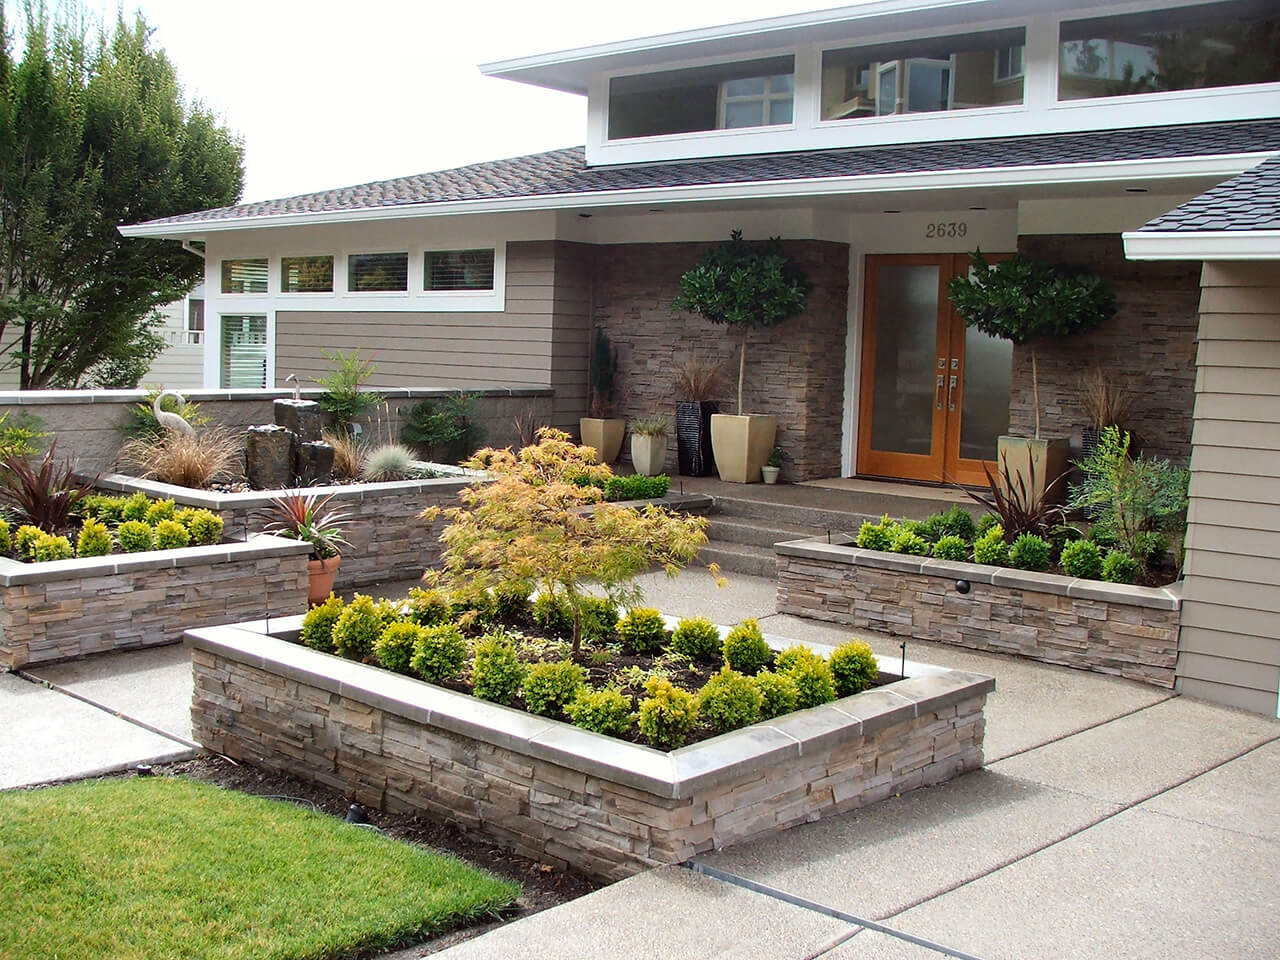 20 brilliant front garden landscaping ideas style motivation for Front garden design plans